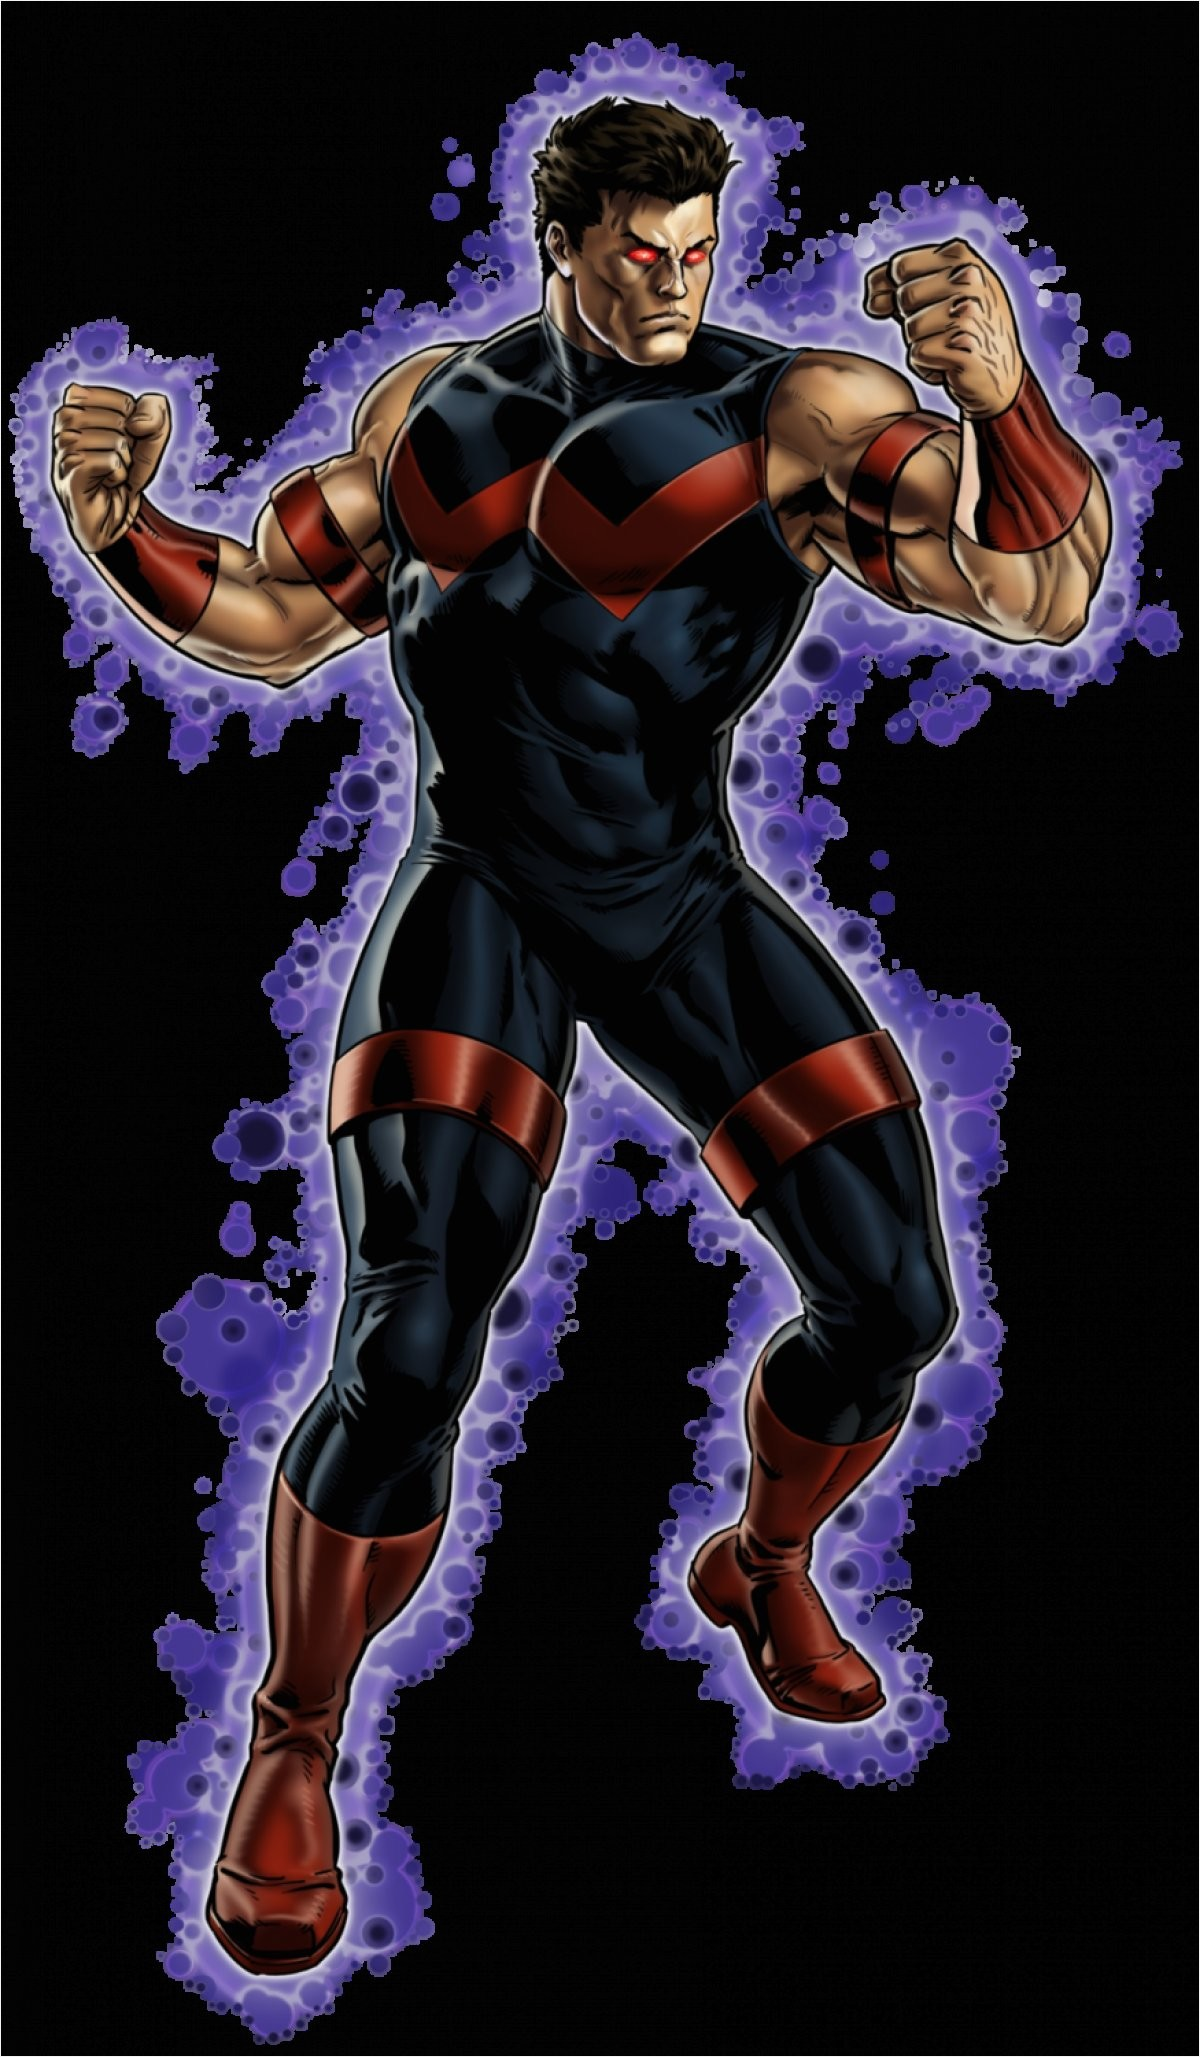 1200x2057 Marvel Villains Wallpaper Best Of Marvel Avengers Alliance Wonder Man by  Ratatrampa87 On